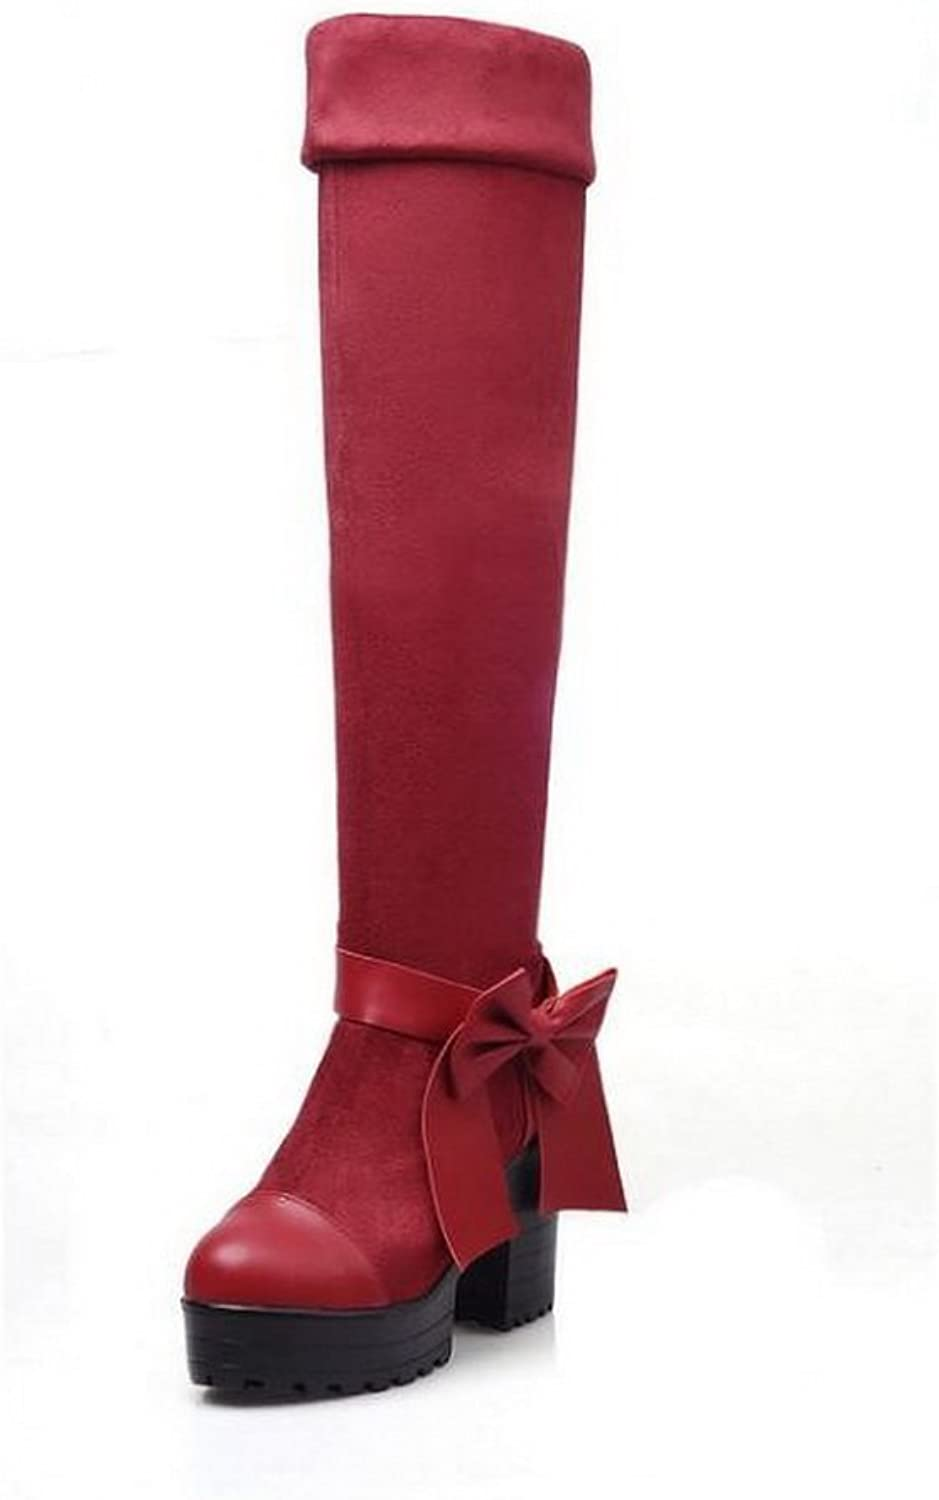 1TO9 Womens Platform High-Heels Solid Knot Round-Toe Urethane Boots